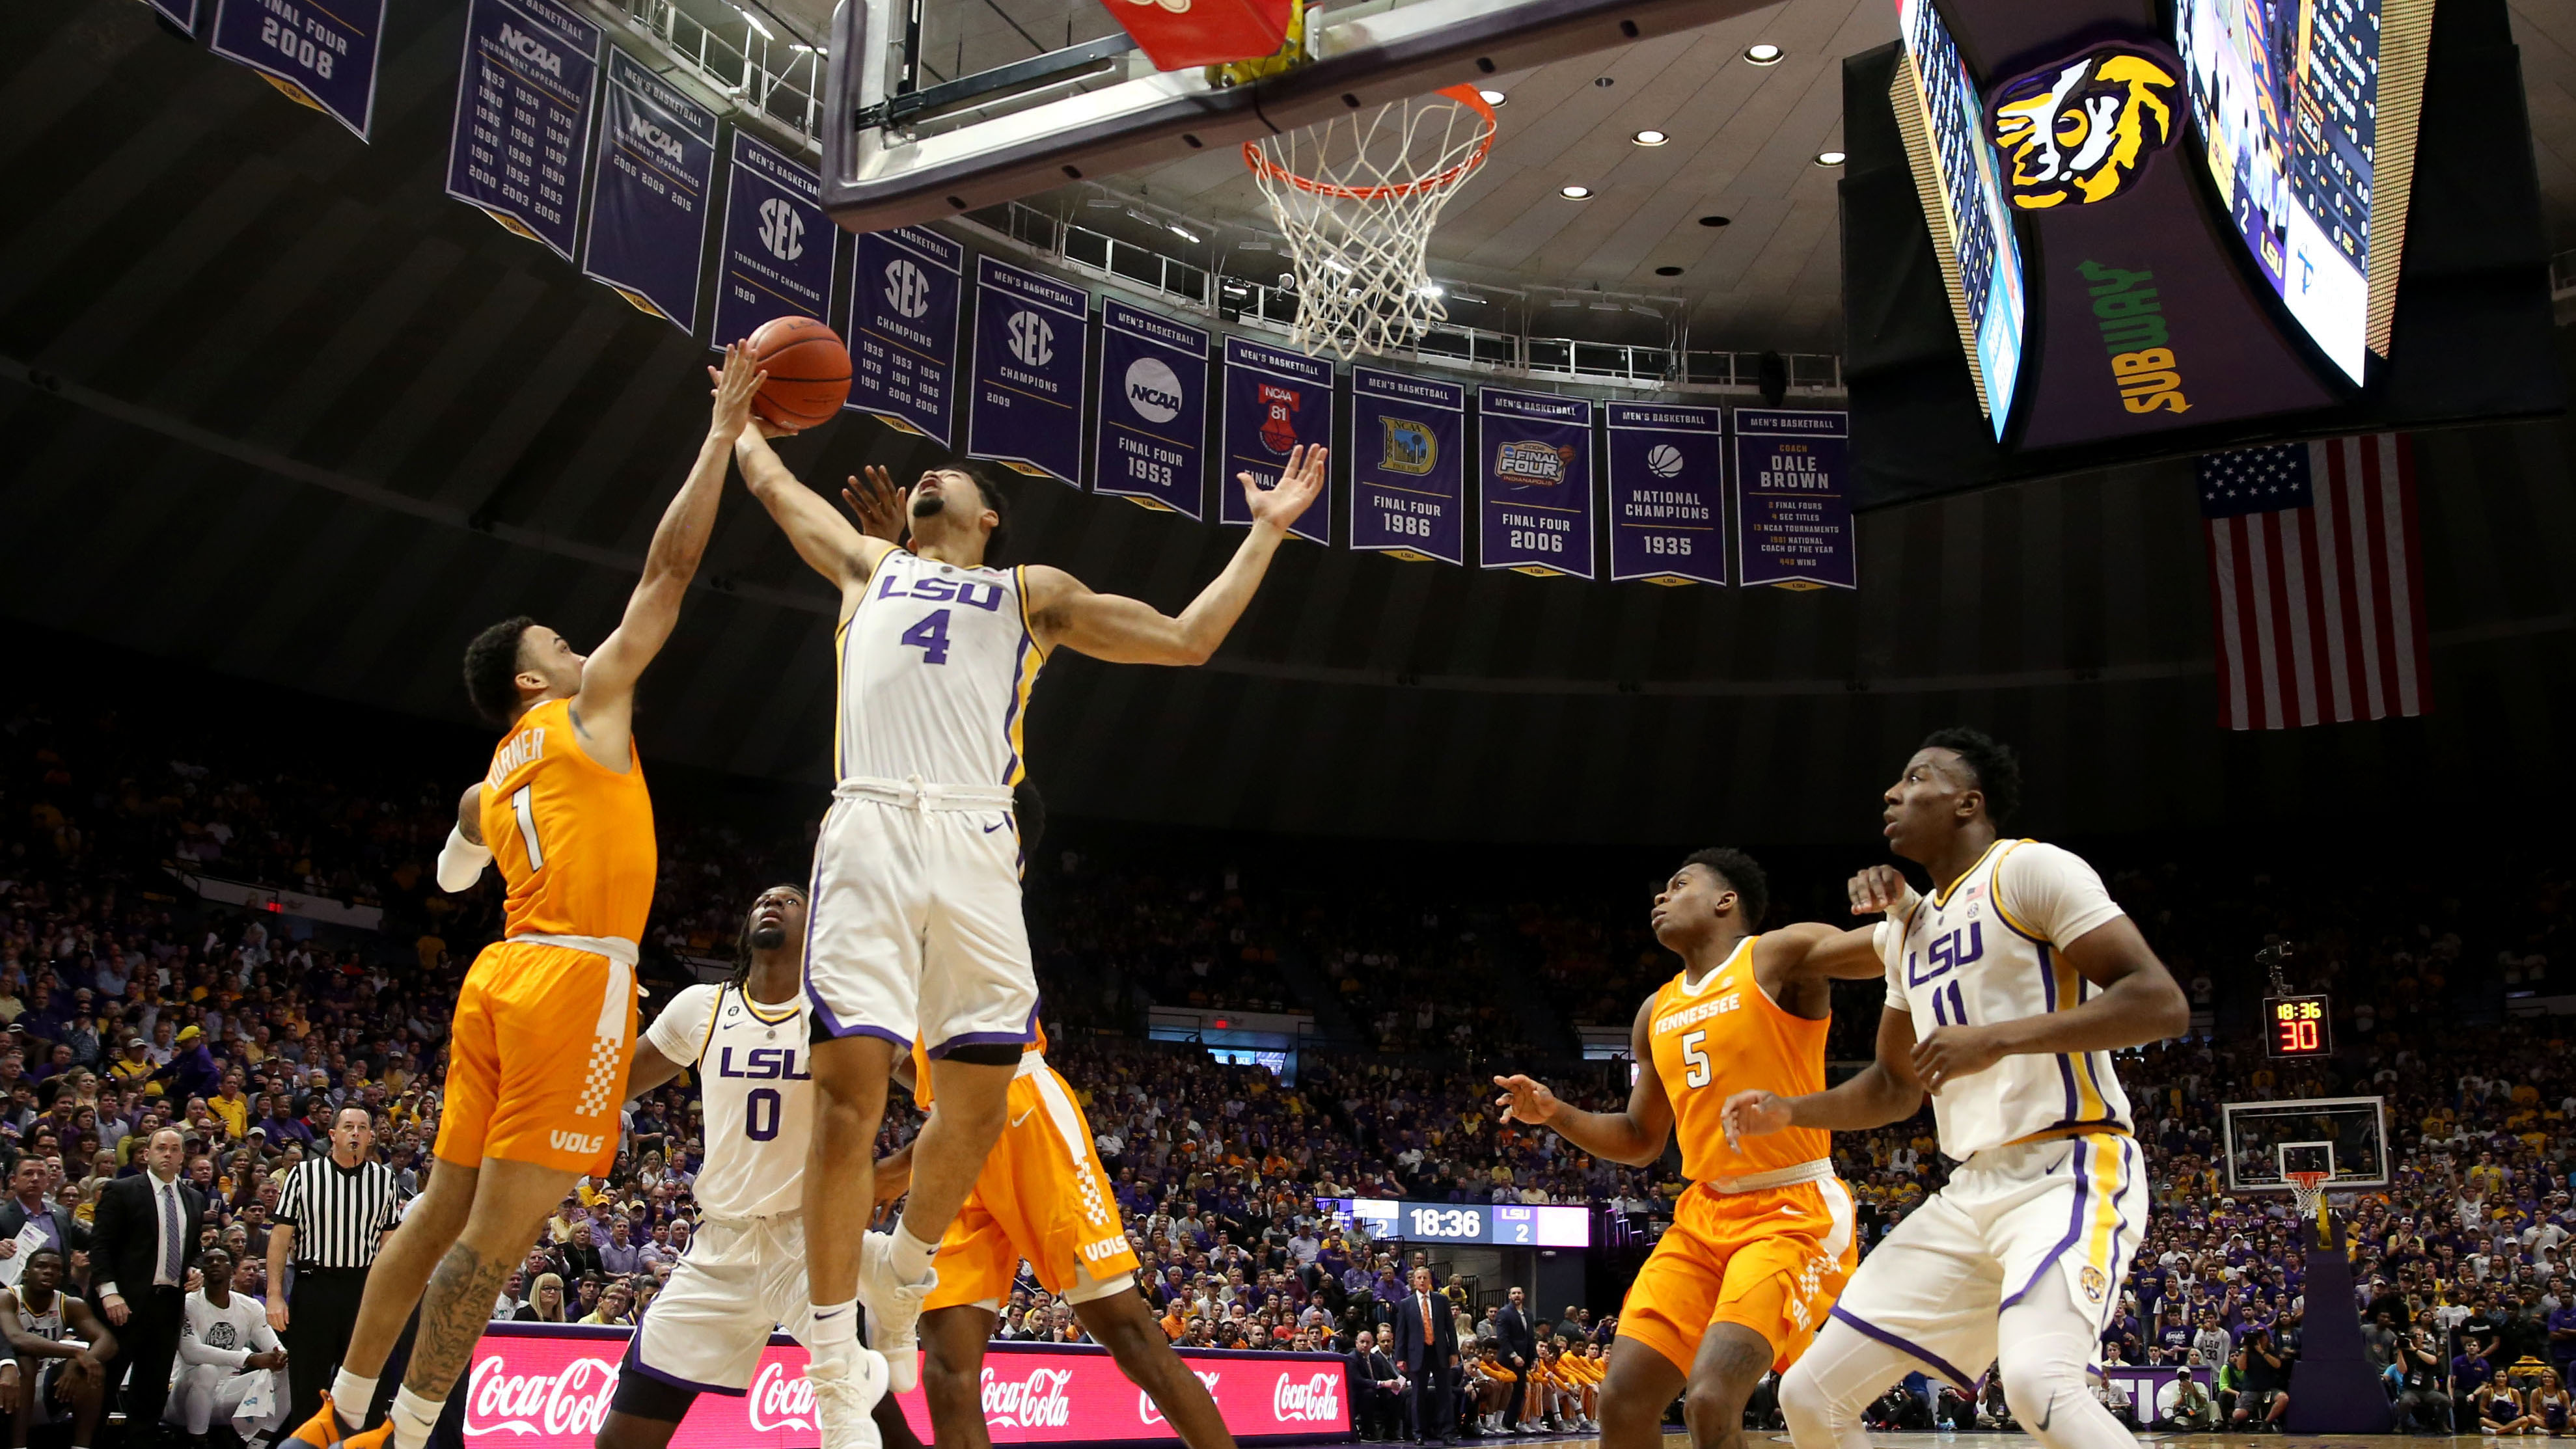 best sneakers f354e 758c5 13 LSU knocks off No. 5 Tennessee in overtime, 82-80   NCAA.com